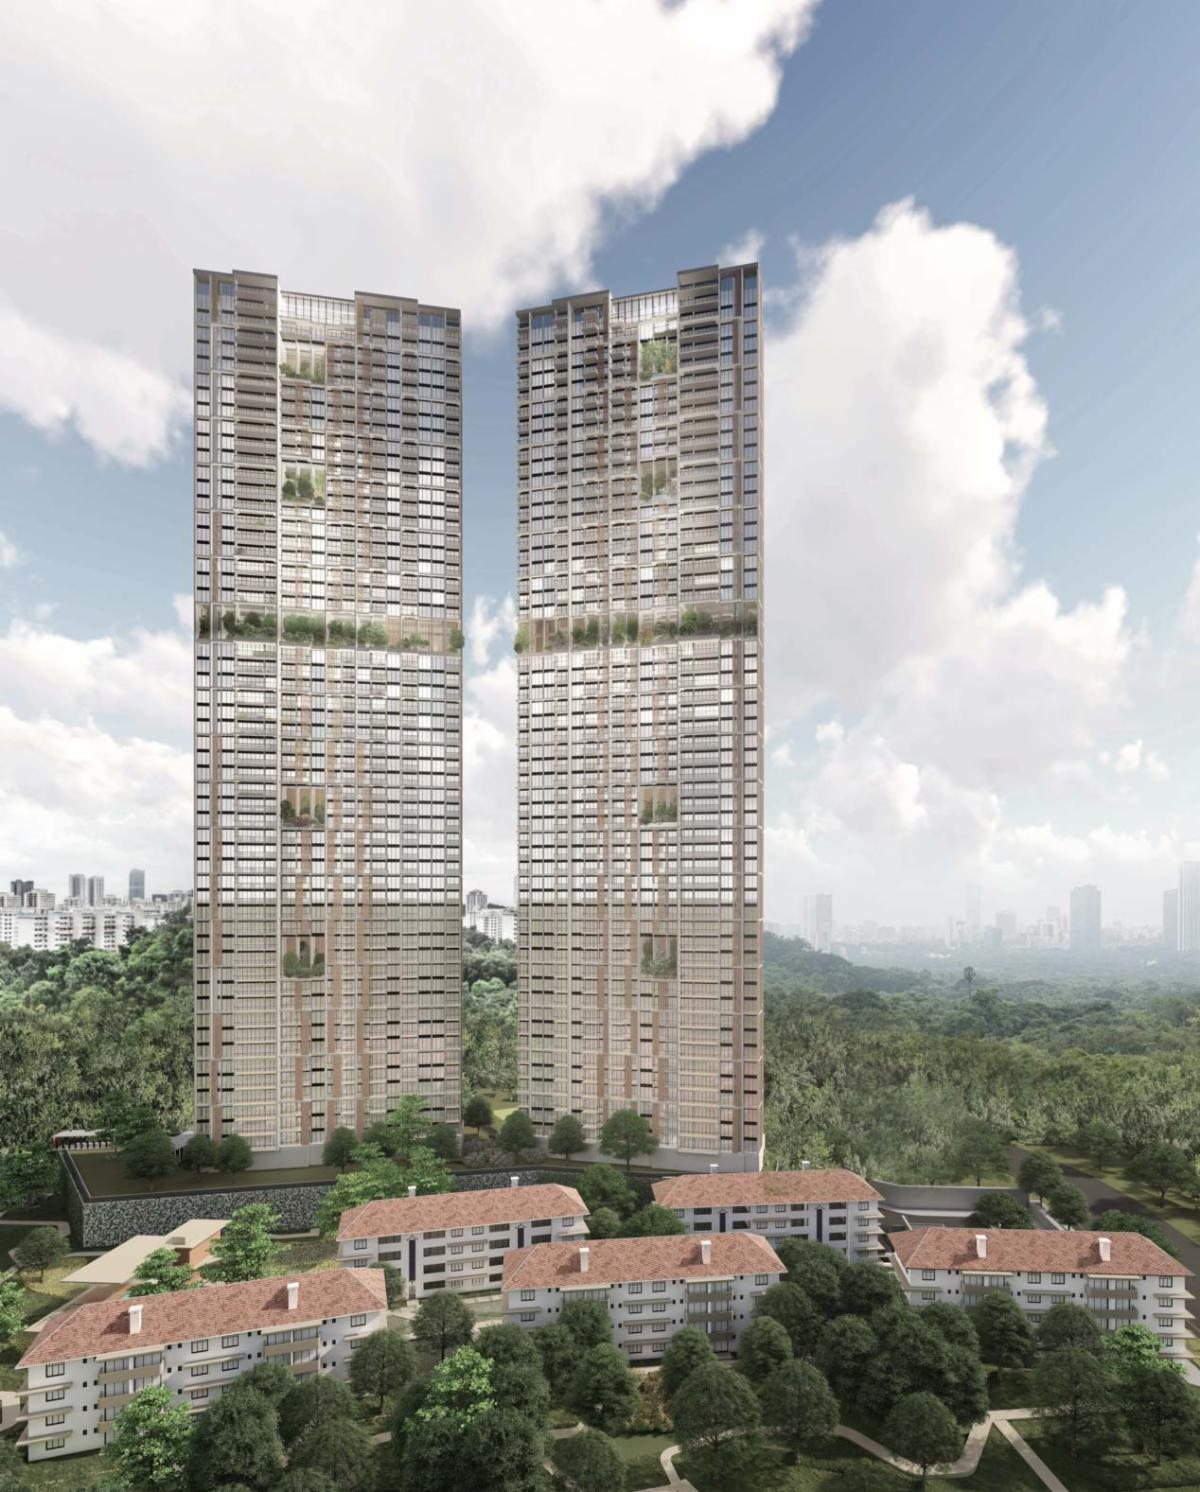 ADDP Architects unveils sustainable high-rise twin towers overlooking  conserved buildings in Singapore - De51gn